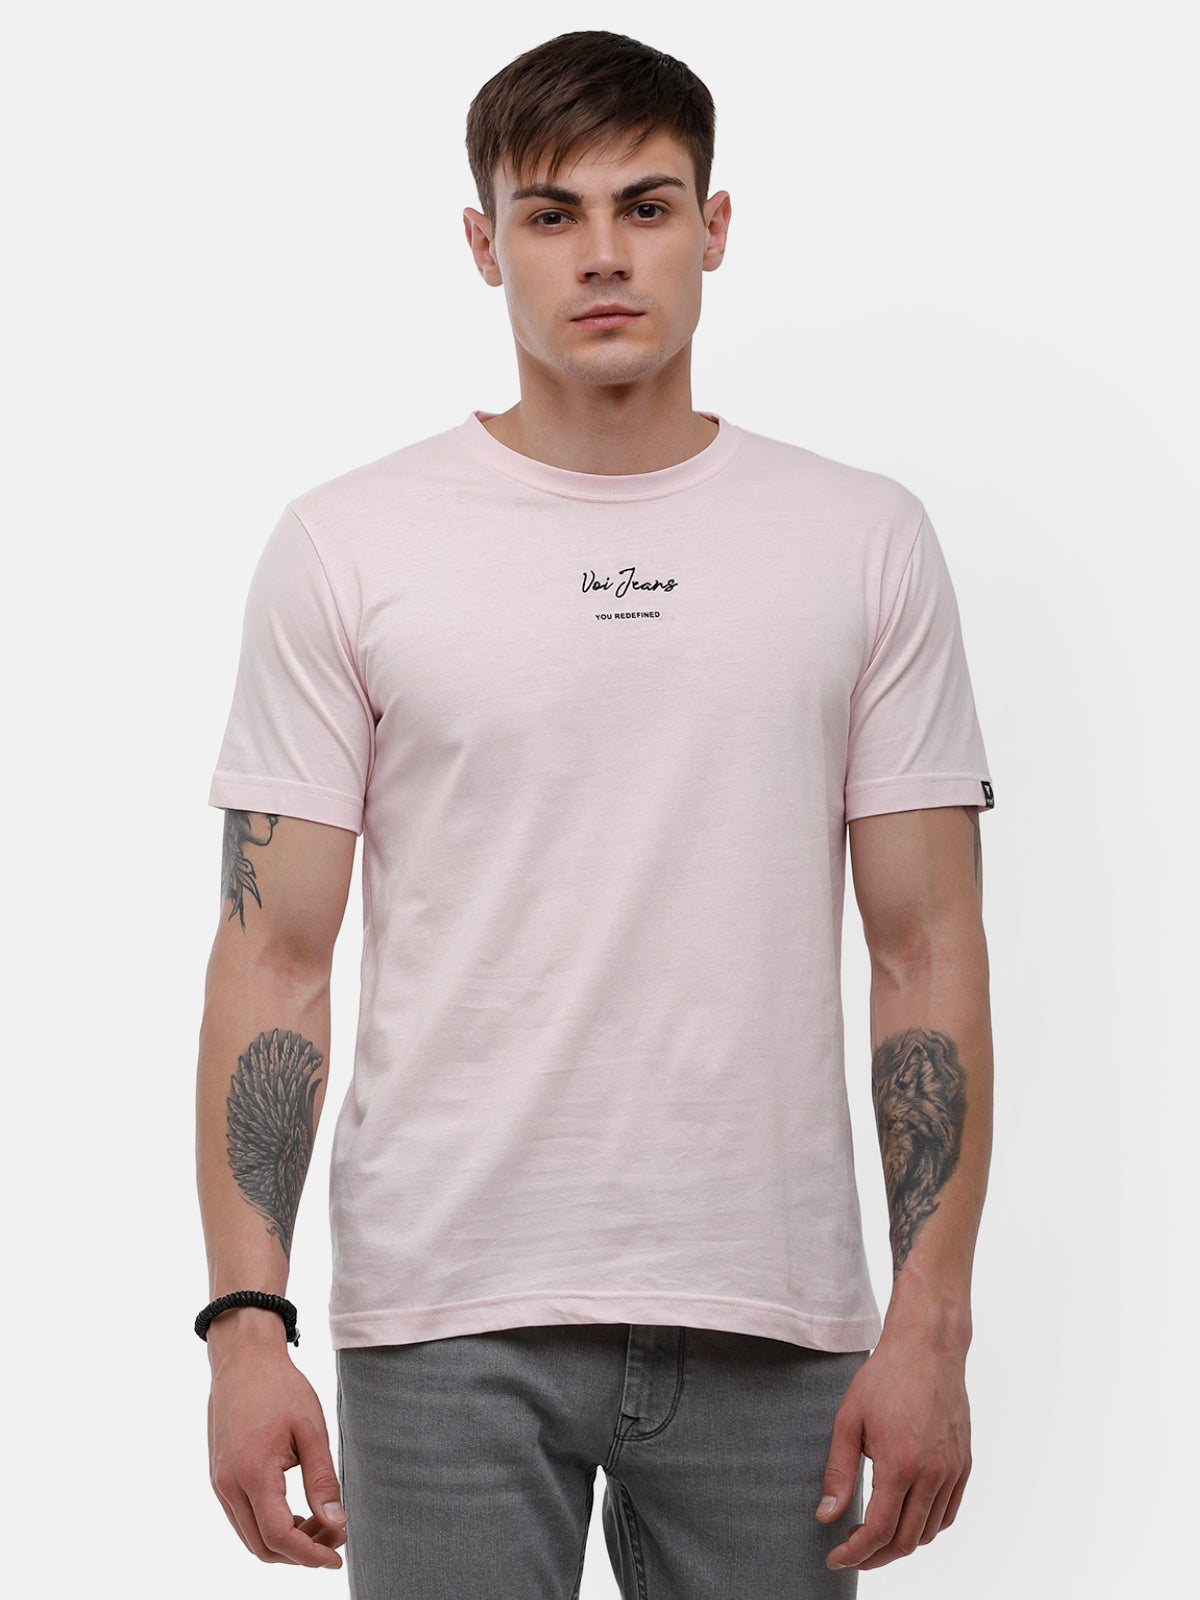 Men's Light pink half sleeve, chest embroidery  T-shirt